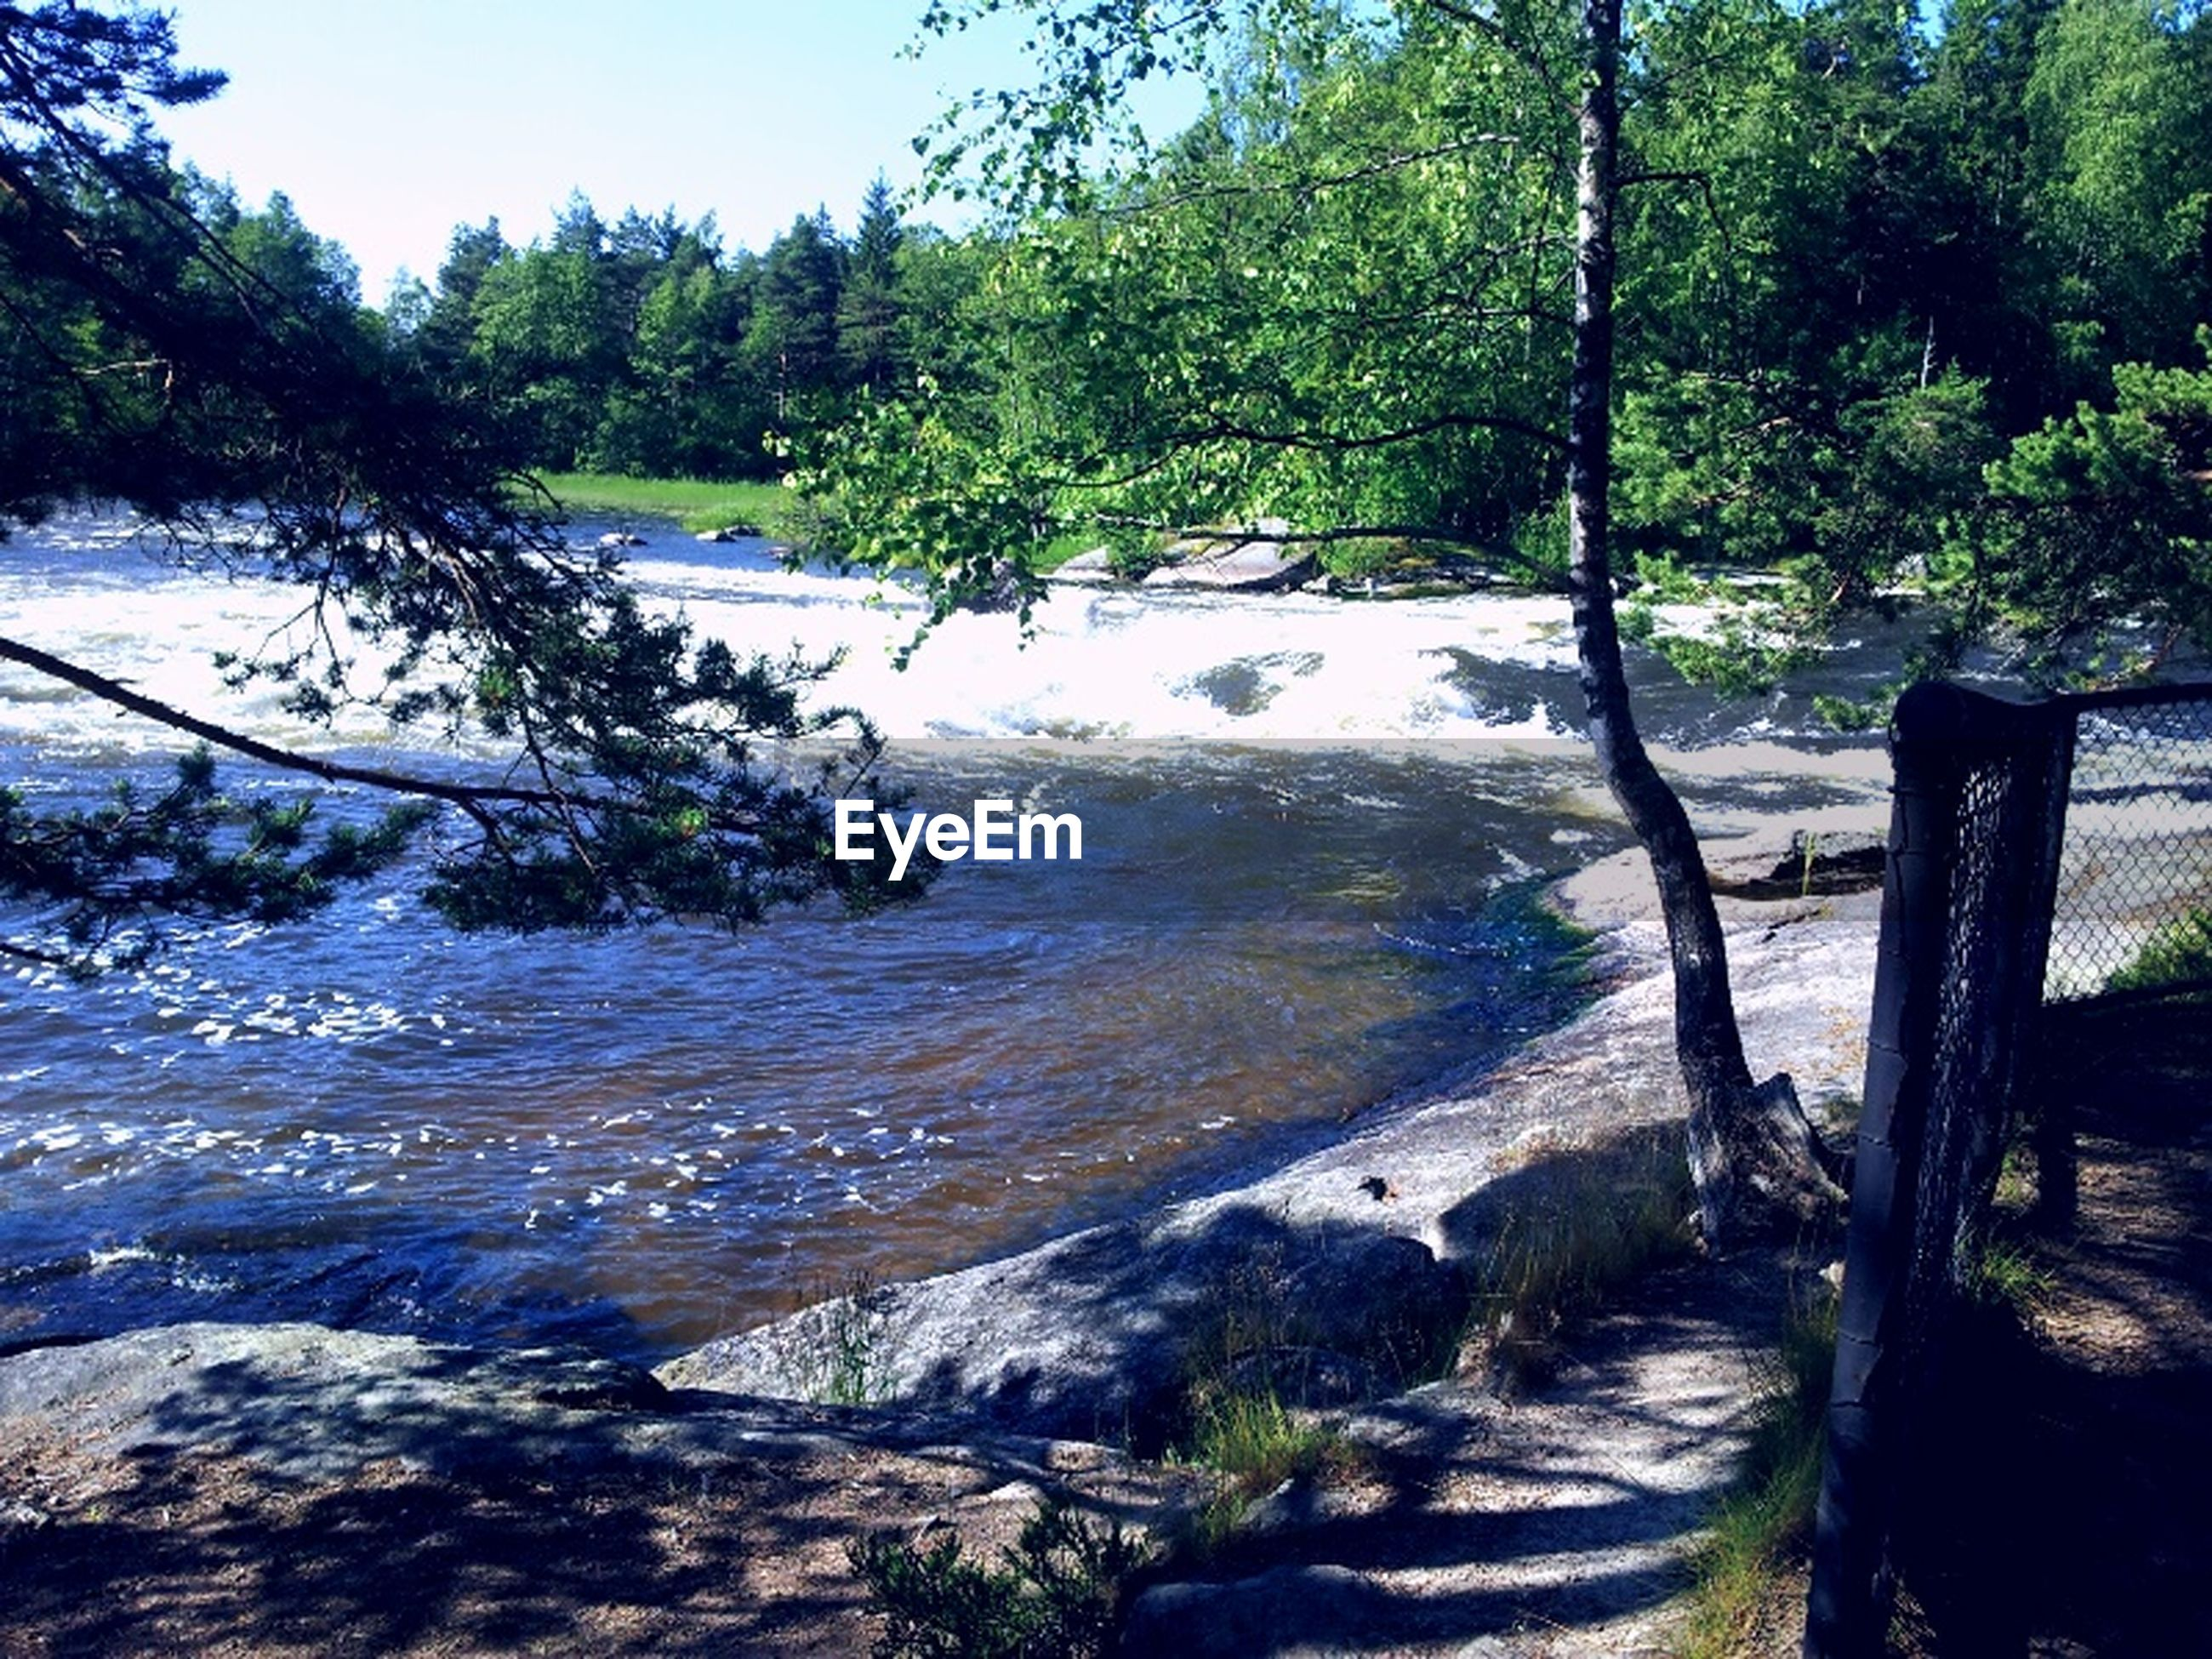 tree, water, rock - object, scenics, tranquility, tranquil scene, beauty in nature, nature, river, forest, stream, rock, flowing water, growth, flowing, rock formation, idyllic, day, non-urban scene, sunlight